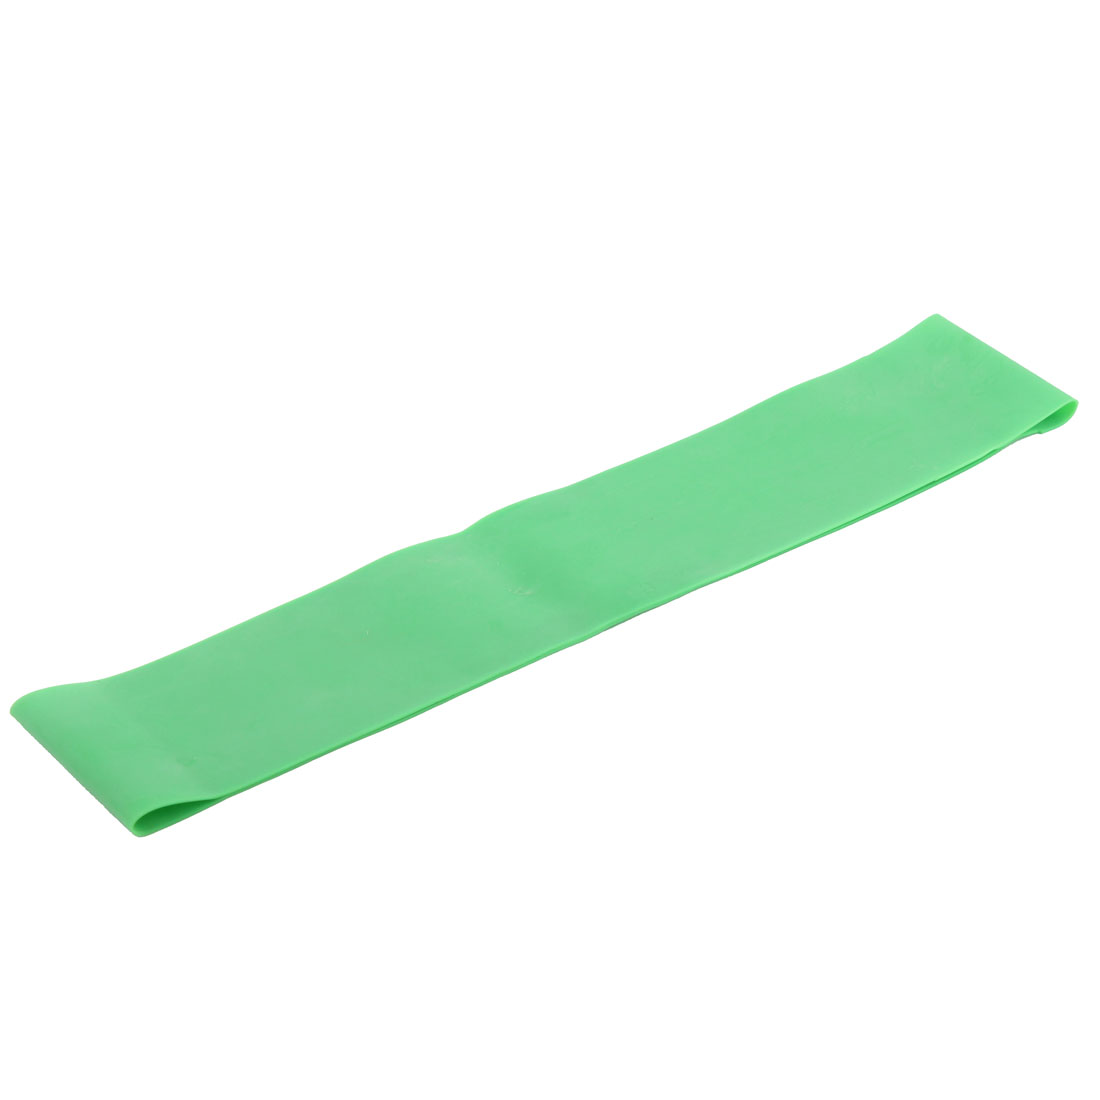 Rubber Yoga Fitness Training Sport Exercise Resistance Bands Green 3 Pcs